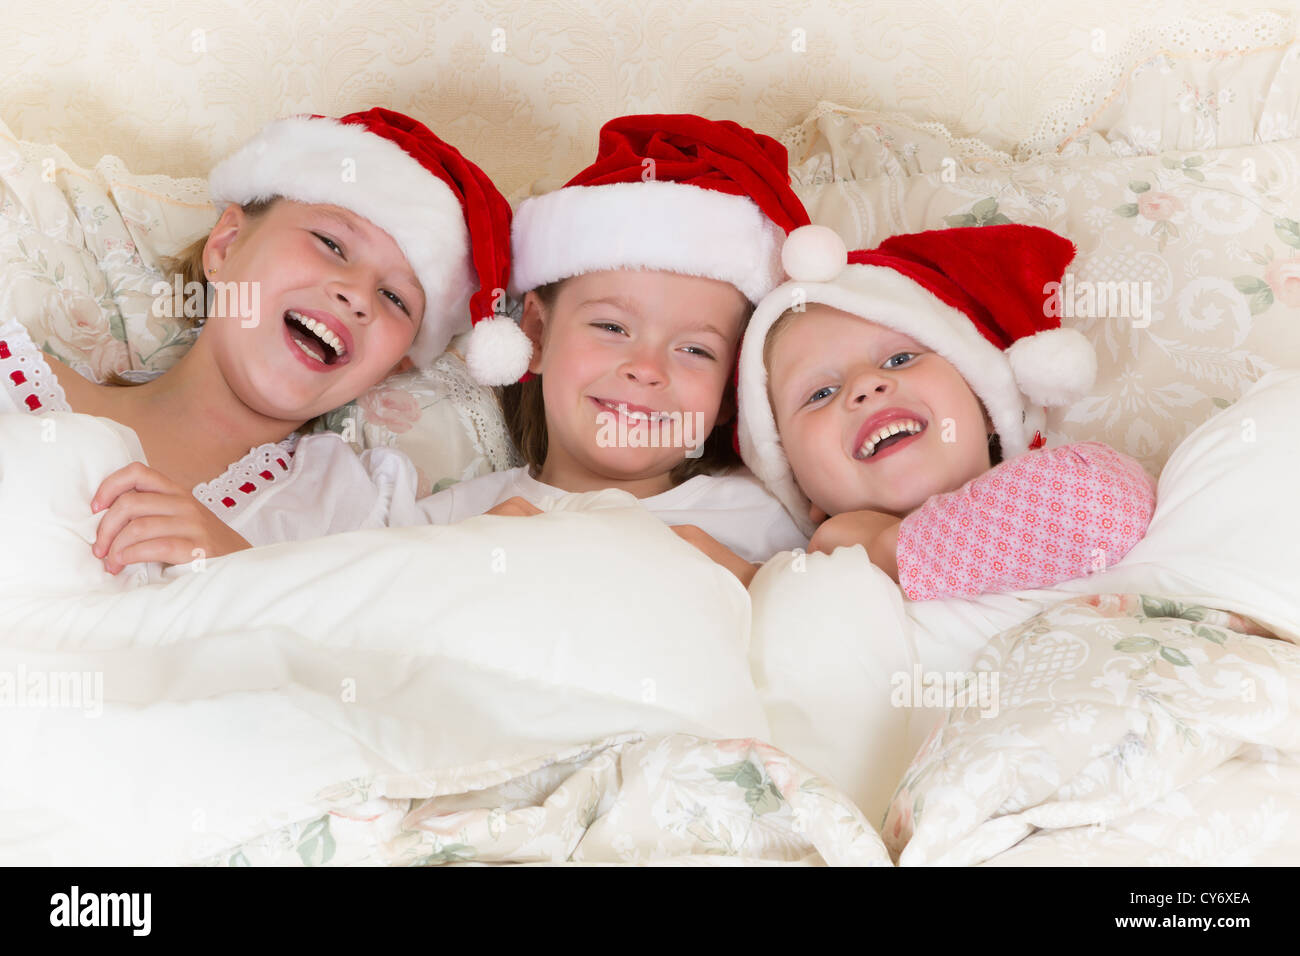 30be503f2 Laughing little girls in bed with santa hats on Stock Photo ...